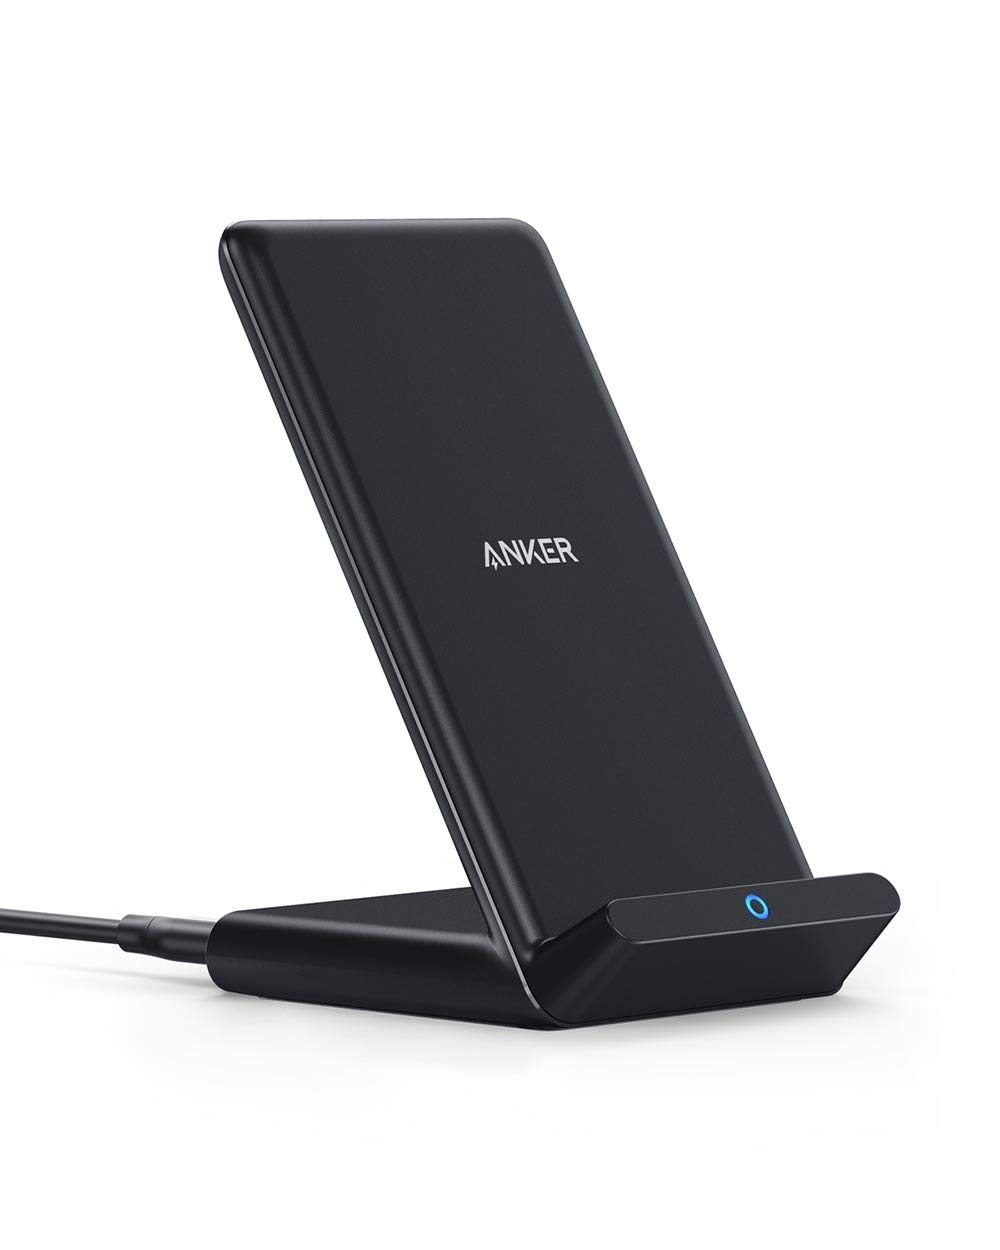 Deals on Anker AK-A2524011 Qi-Certified 10W Fast Wireless Charging Stand